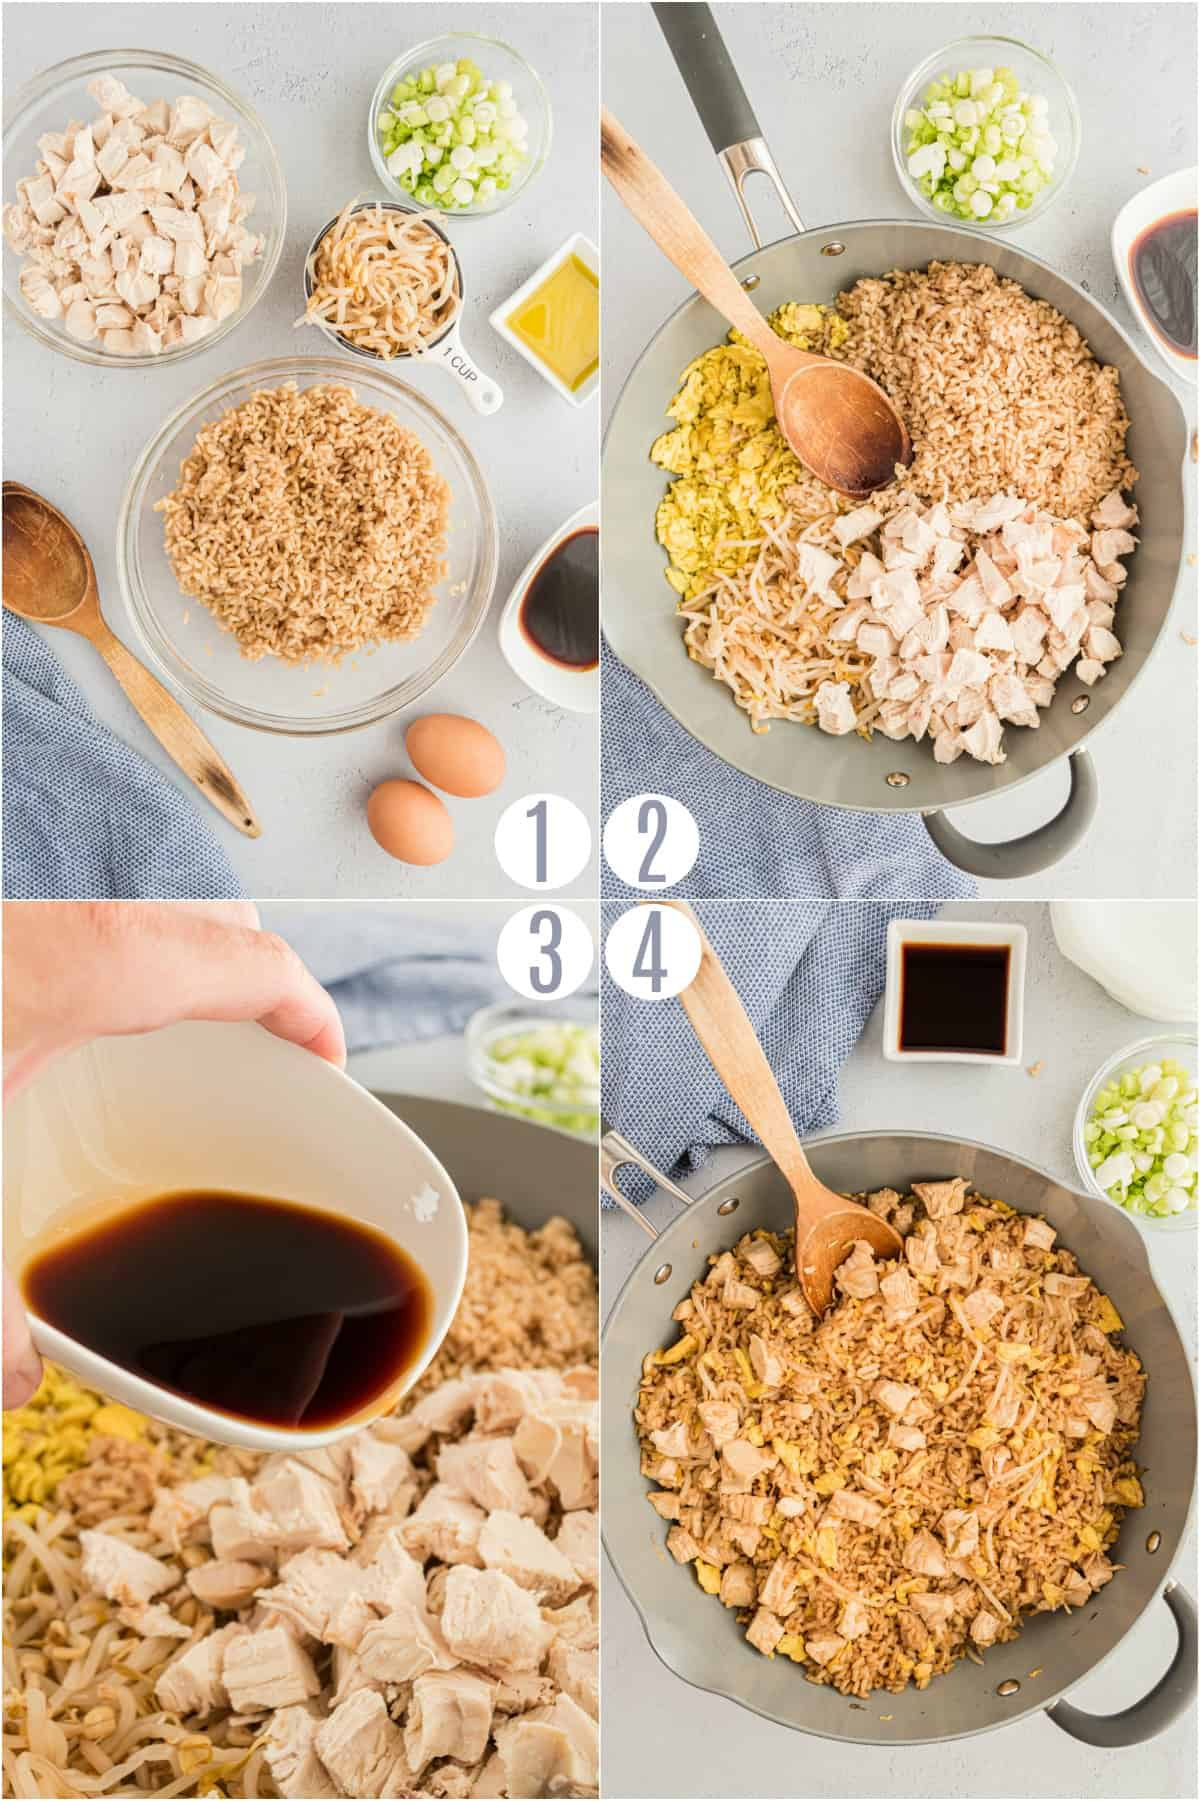 Step by step photos showing how to make chicken fried rice in a skillet.